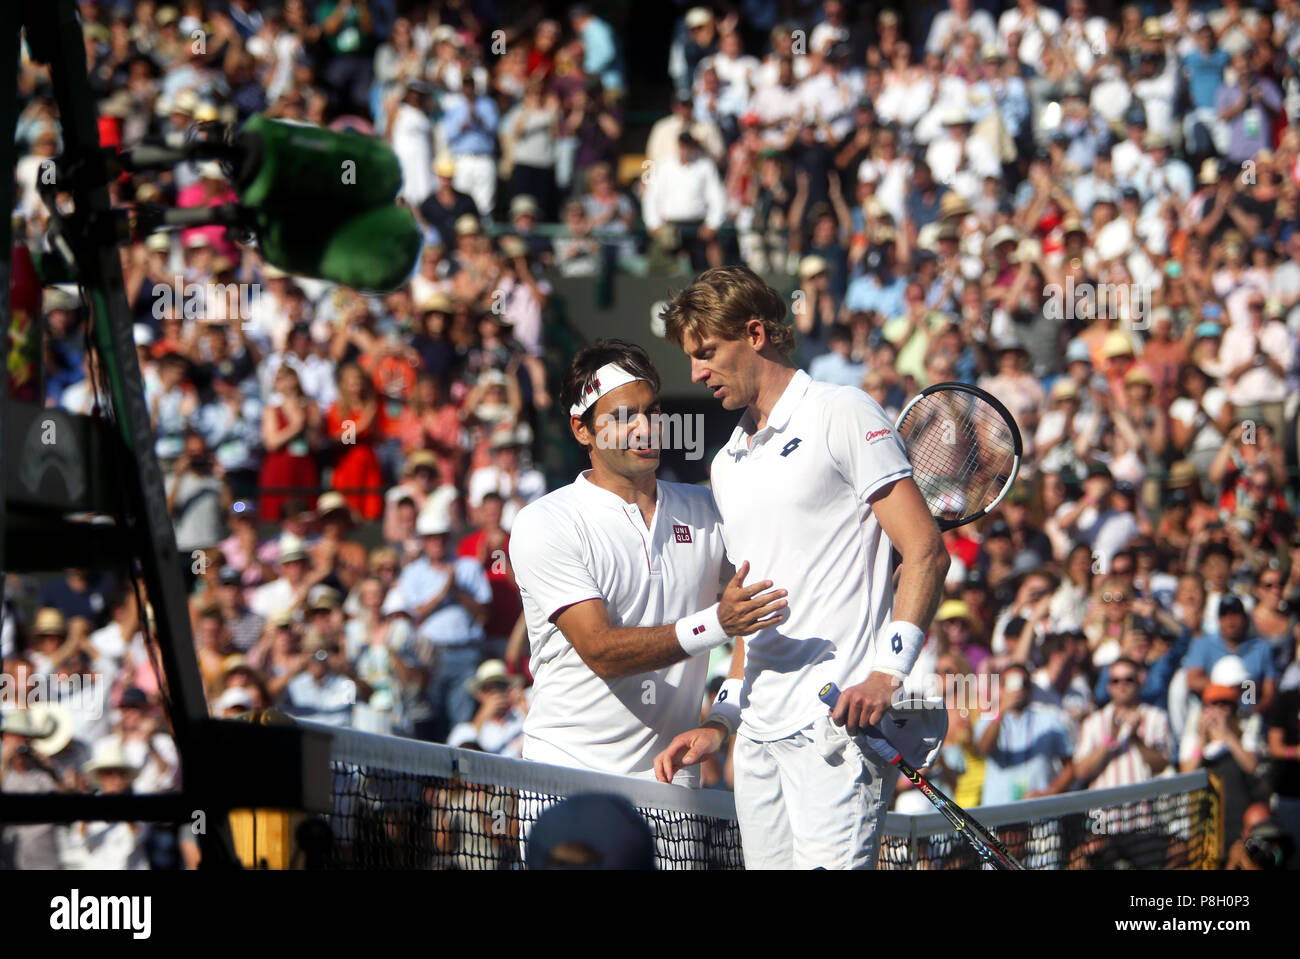 London, UK. 11th July, 2018.  Wimbledon Tennis:Roger Federer is consoled by opponent Kevin Anderson of South Africa after Anderson's five set victory over Federe in the quarter finals at Wimbledon today. Credit: Adam Stoltman/Alamy Live News - Stock Image